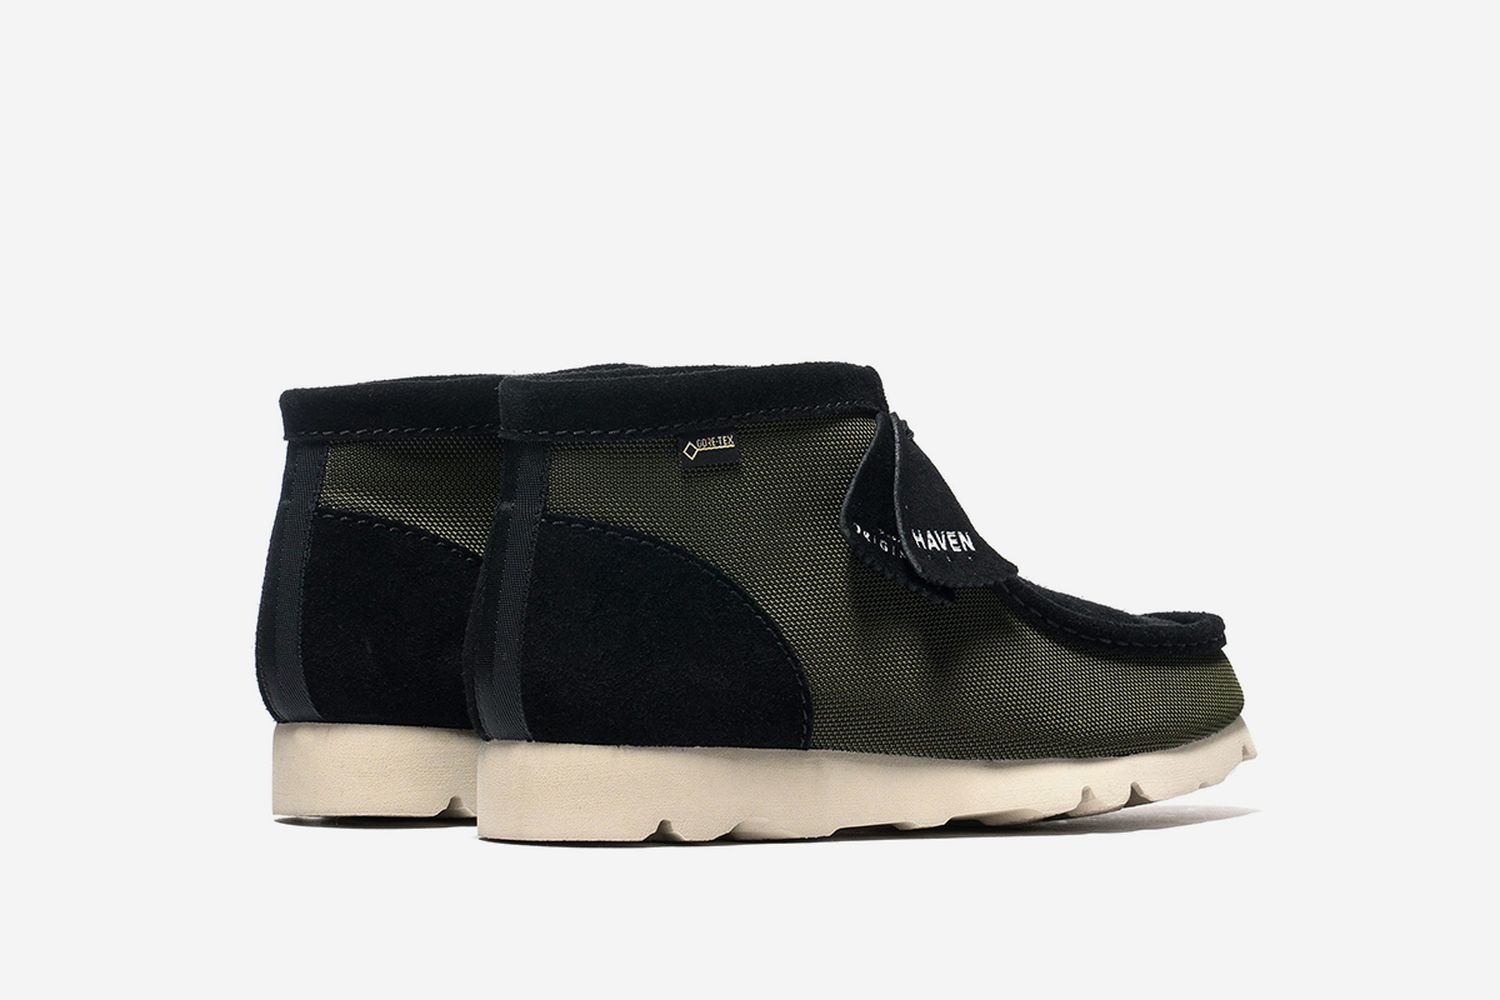 GORE-TEX Ballistic Wallabee Boot